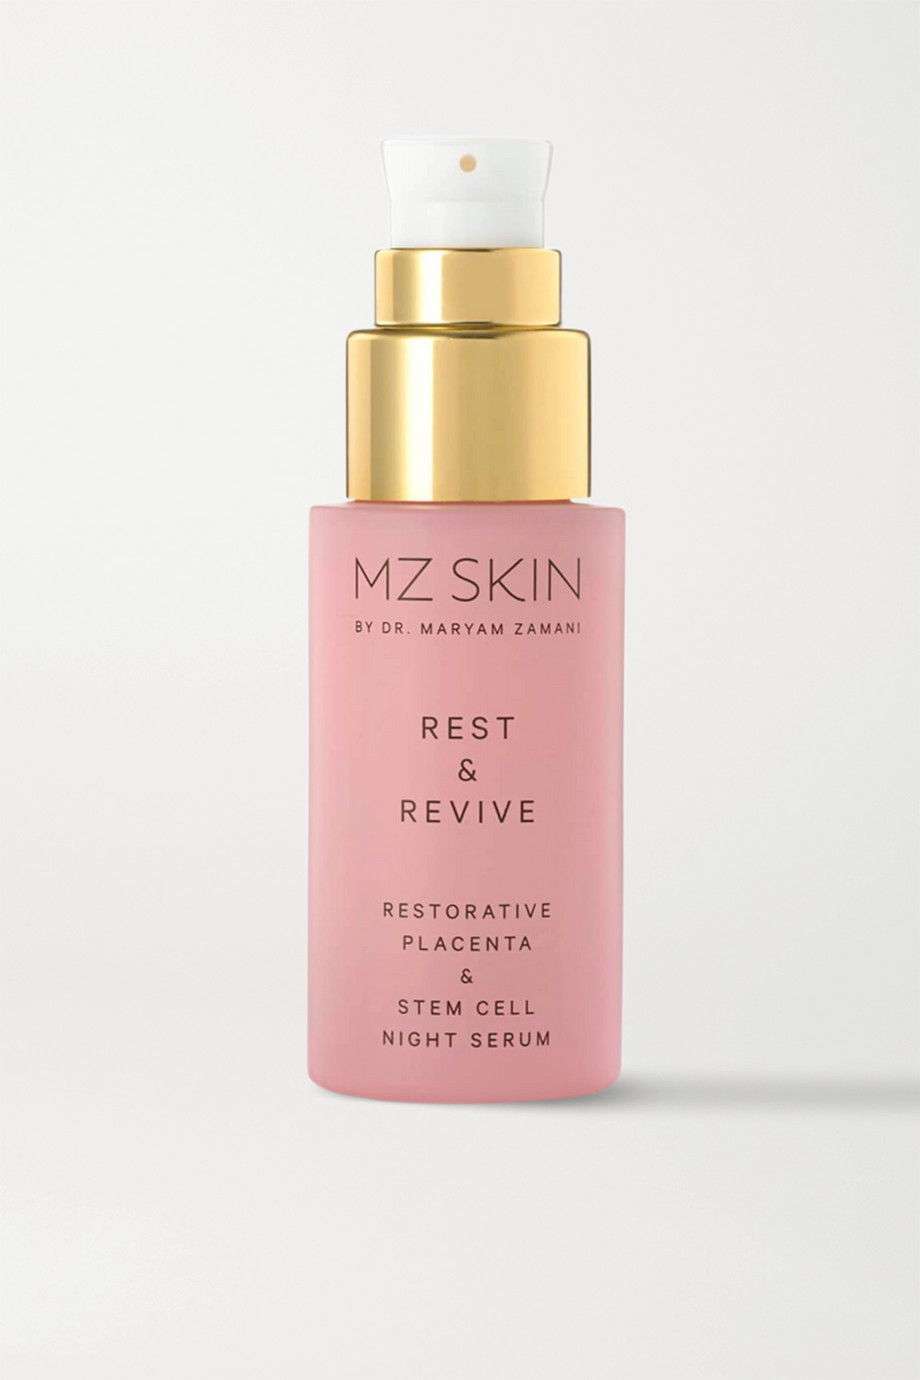 MZ SKIN Rest & Revive Restorative Placenta & Stem Cell Night Serum, 30ml